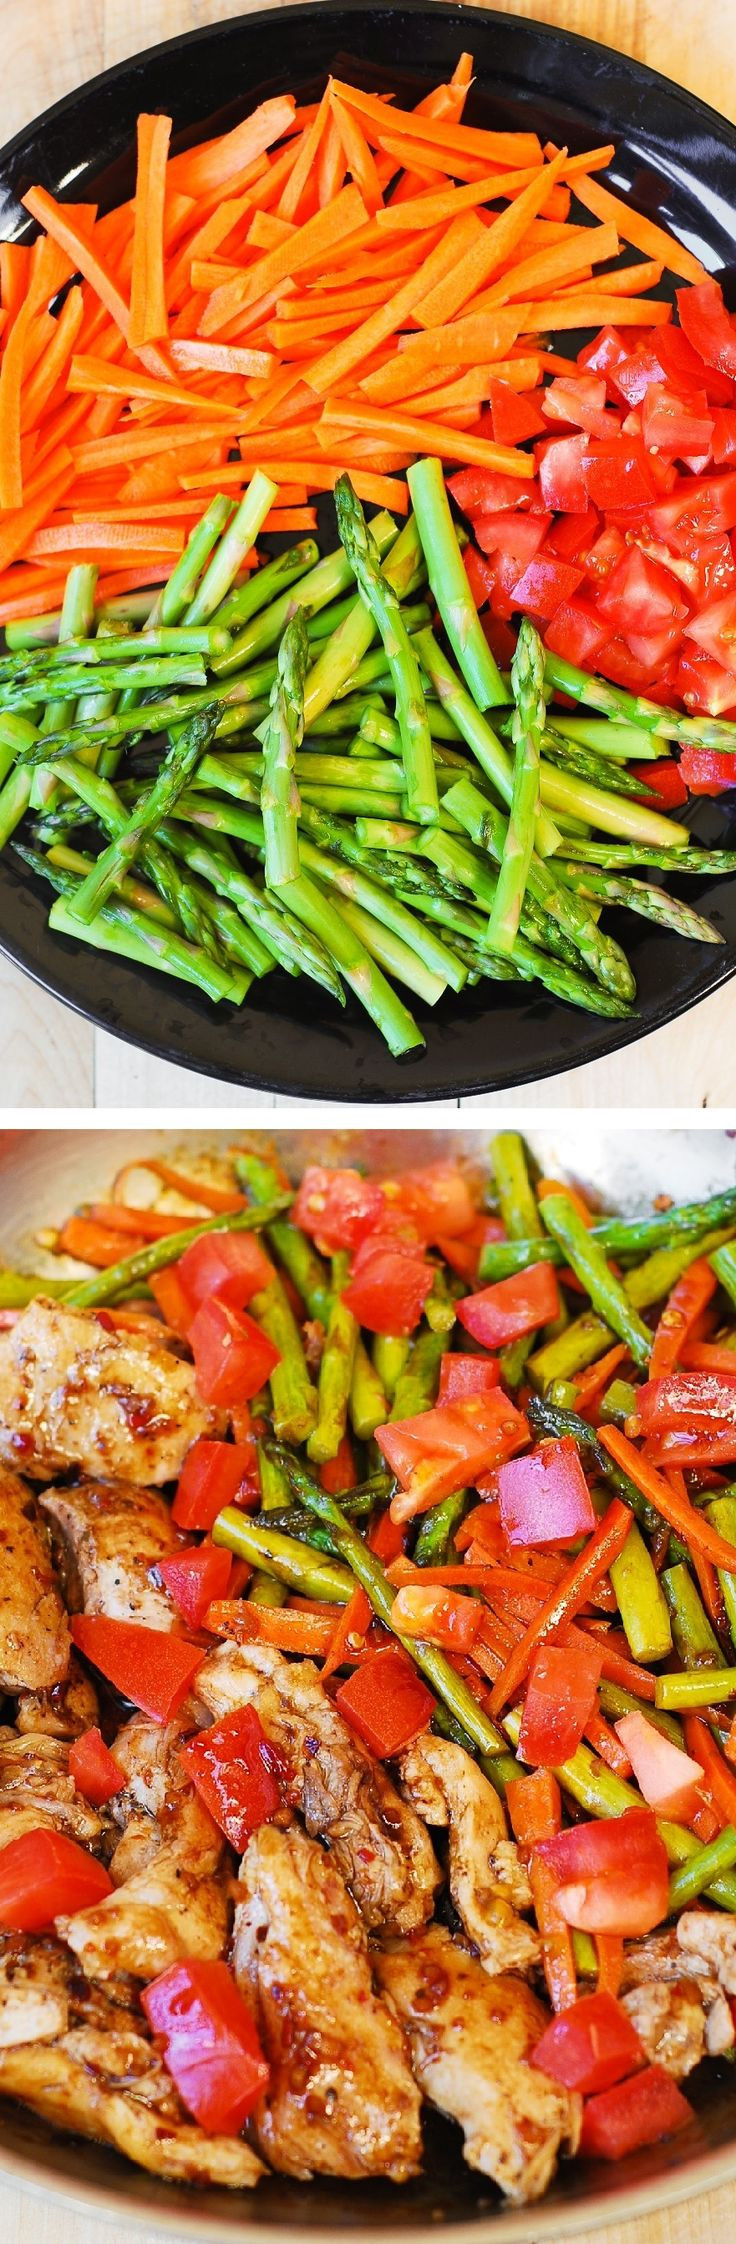 Healthy Low Fat Recipes For Weight Loss  Best 25 Weight loss meals ideas on Pinterest